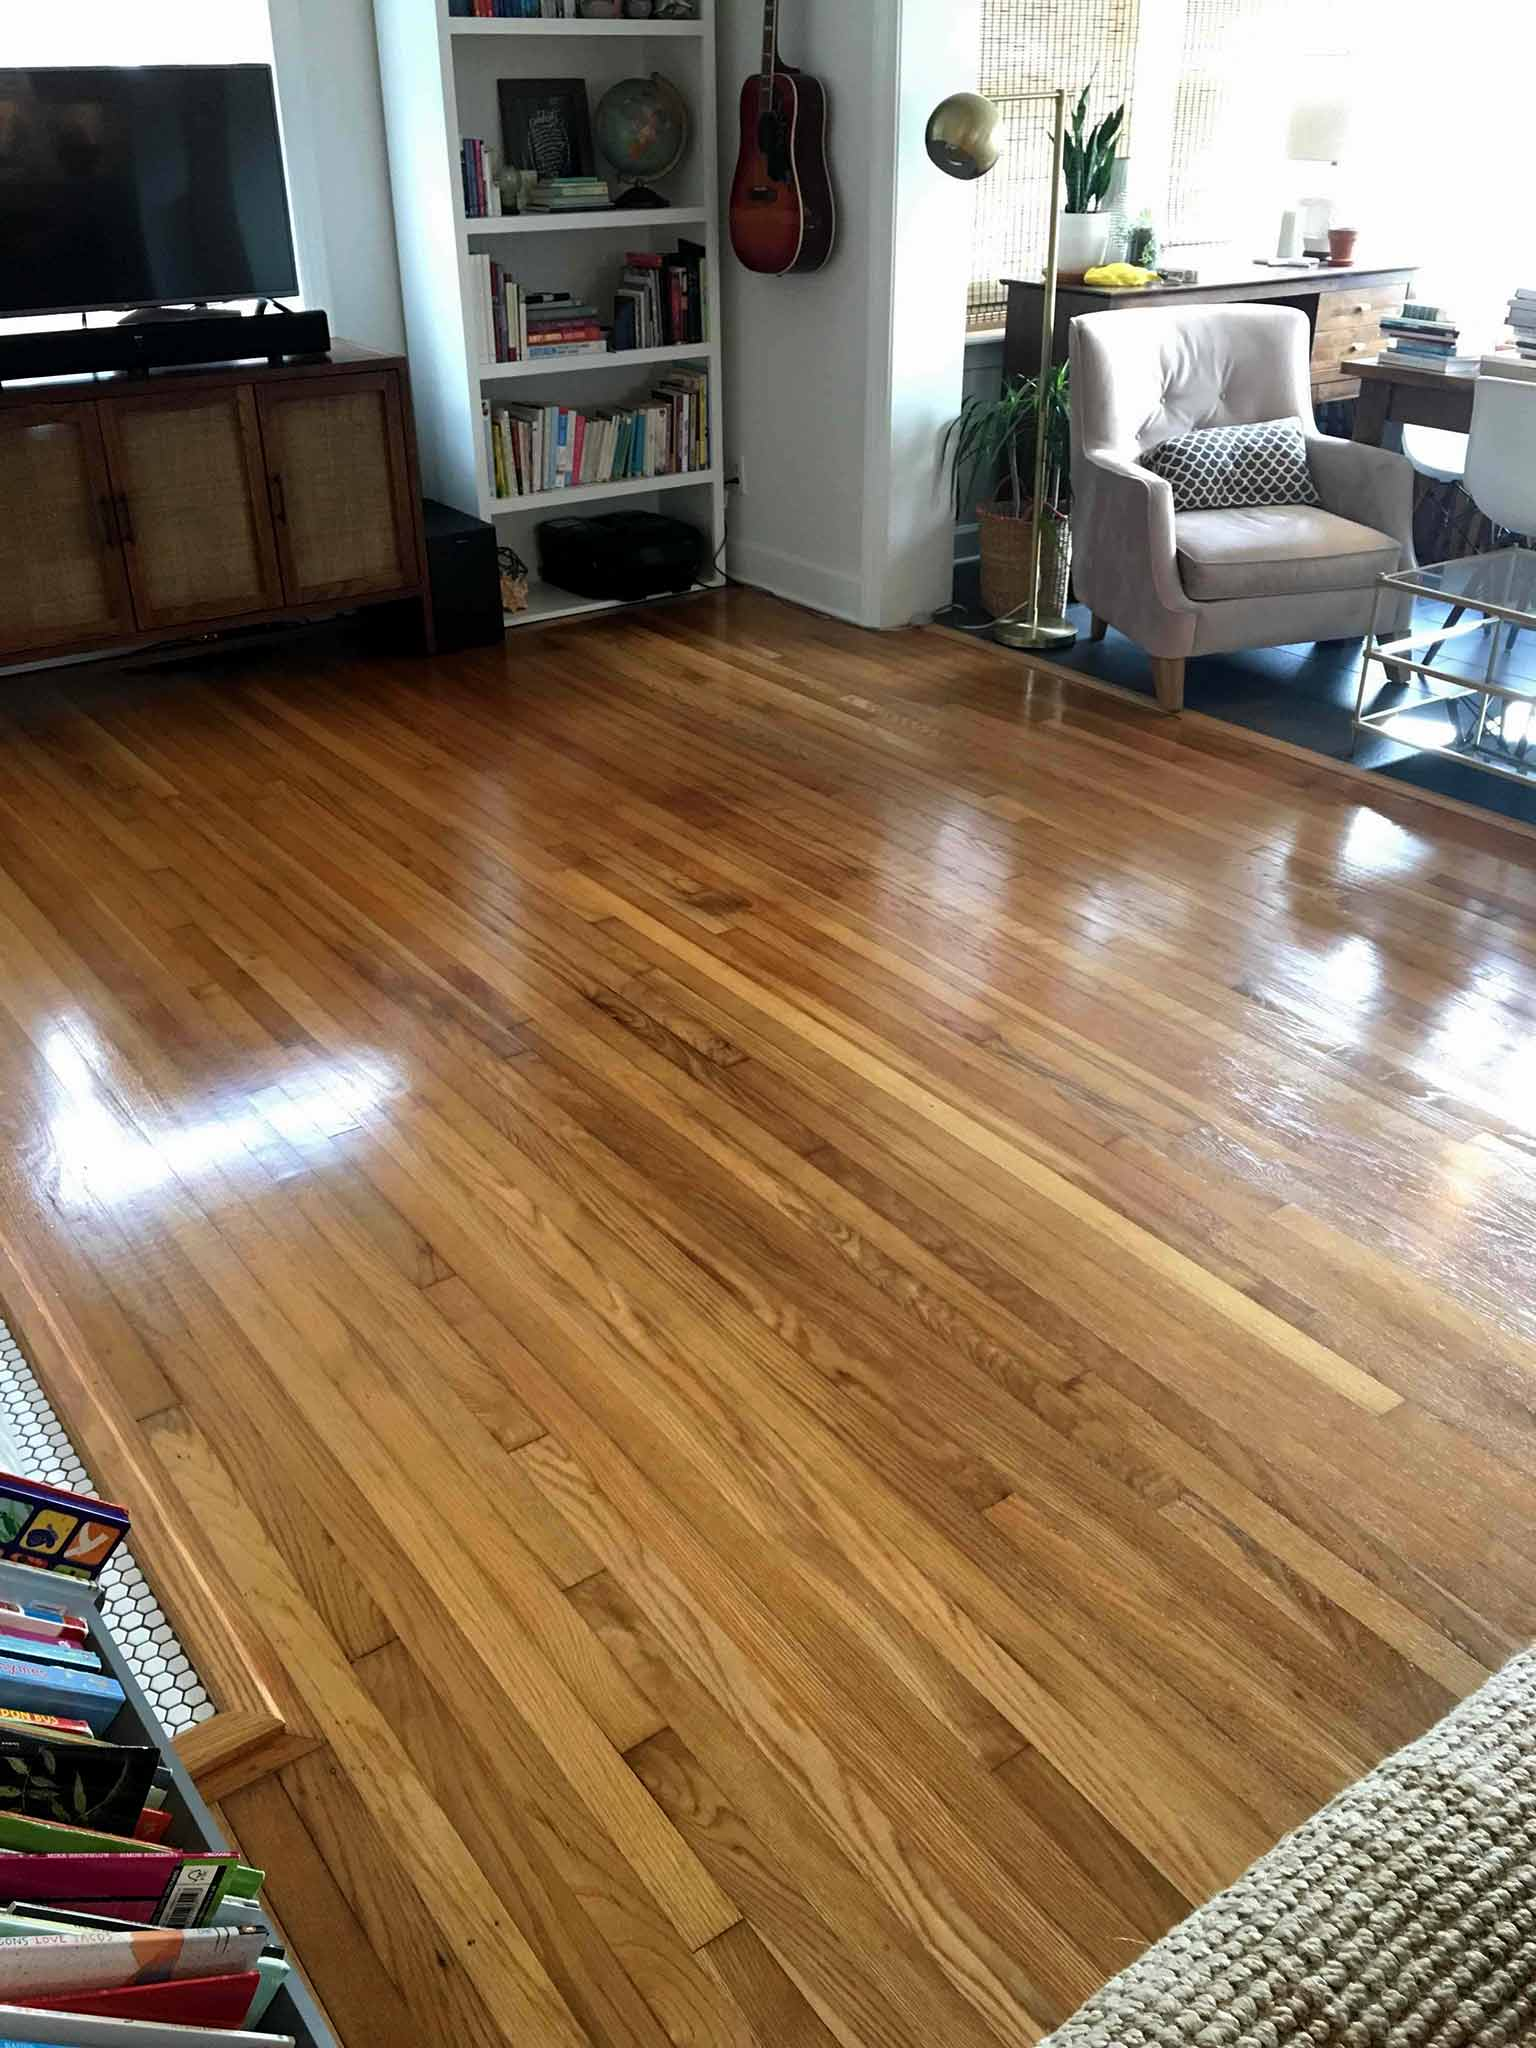 Zep hardwood laminate floor refinisher results - That Homebird Life Blog